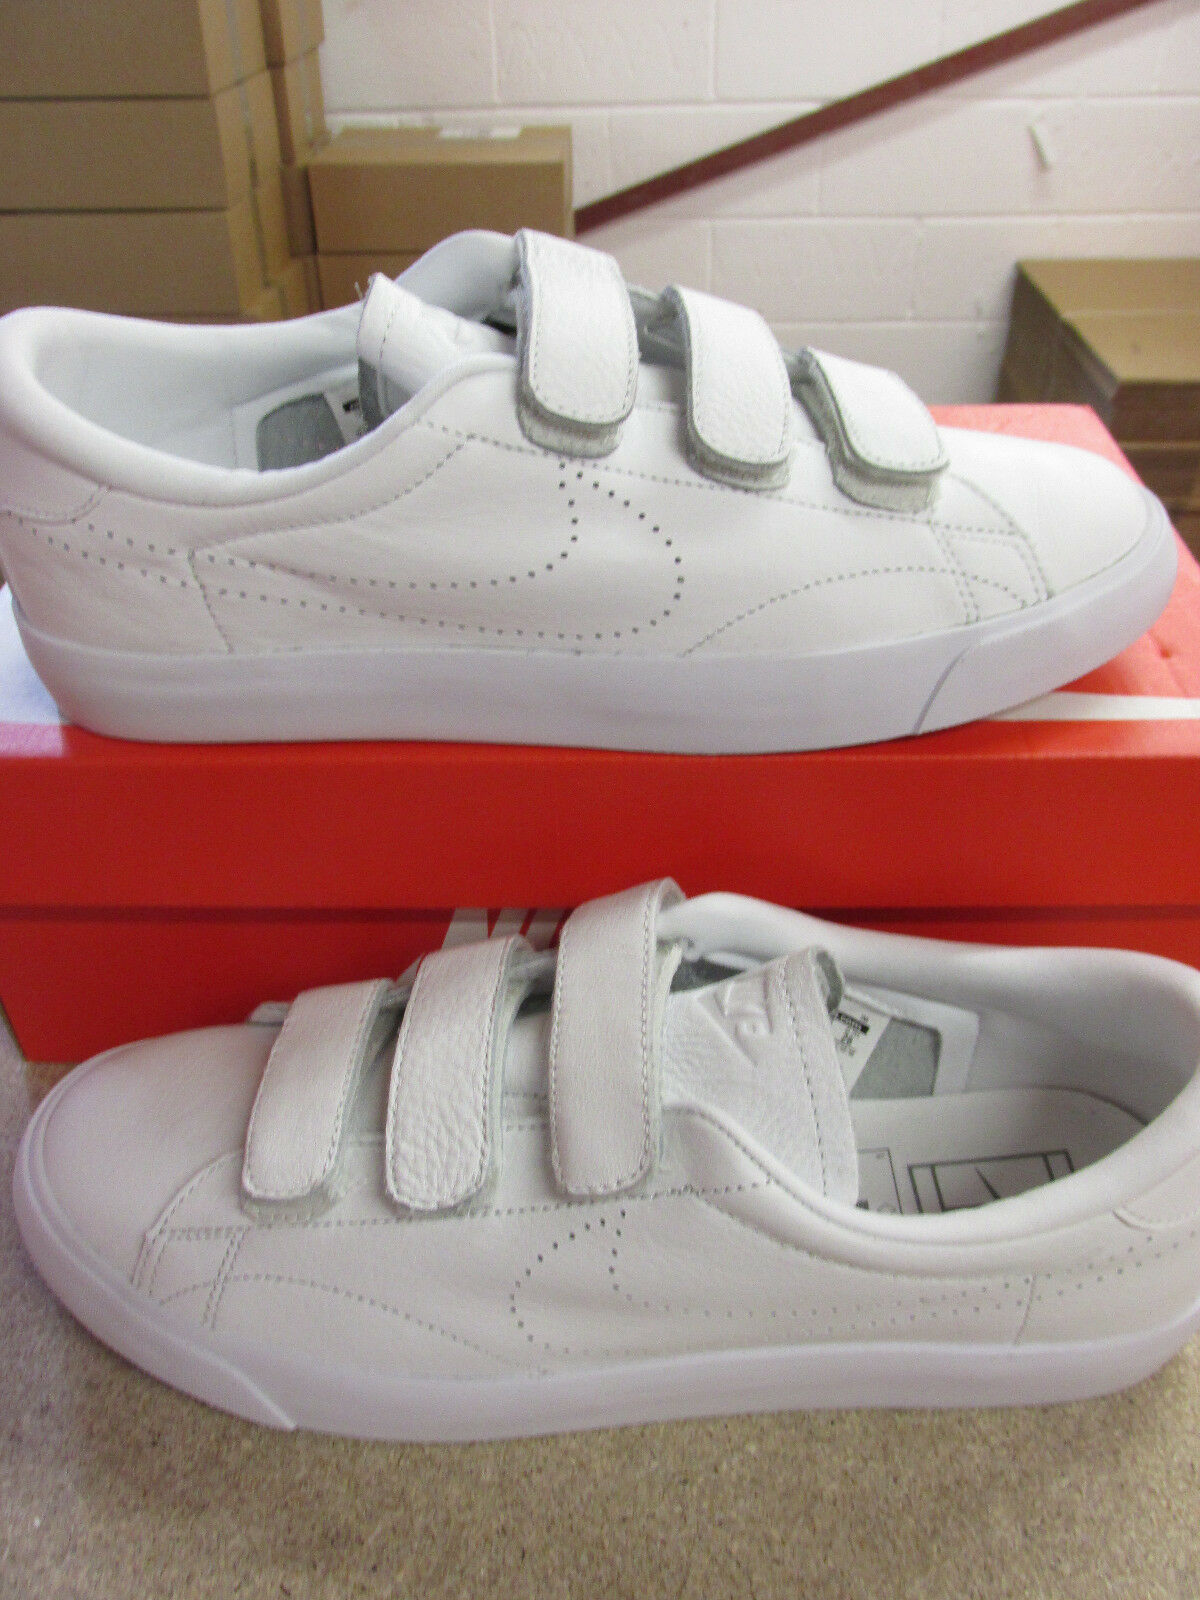 Nike Tennis Classic AC V Mens Trainers 749448 100 Sneakers shoes